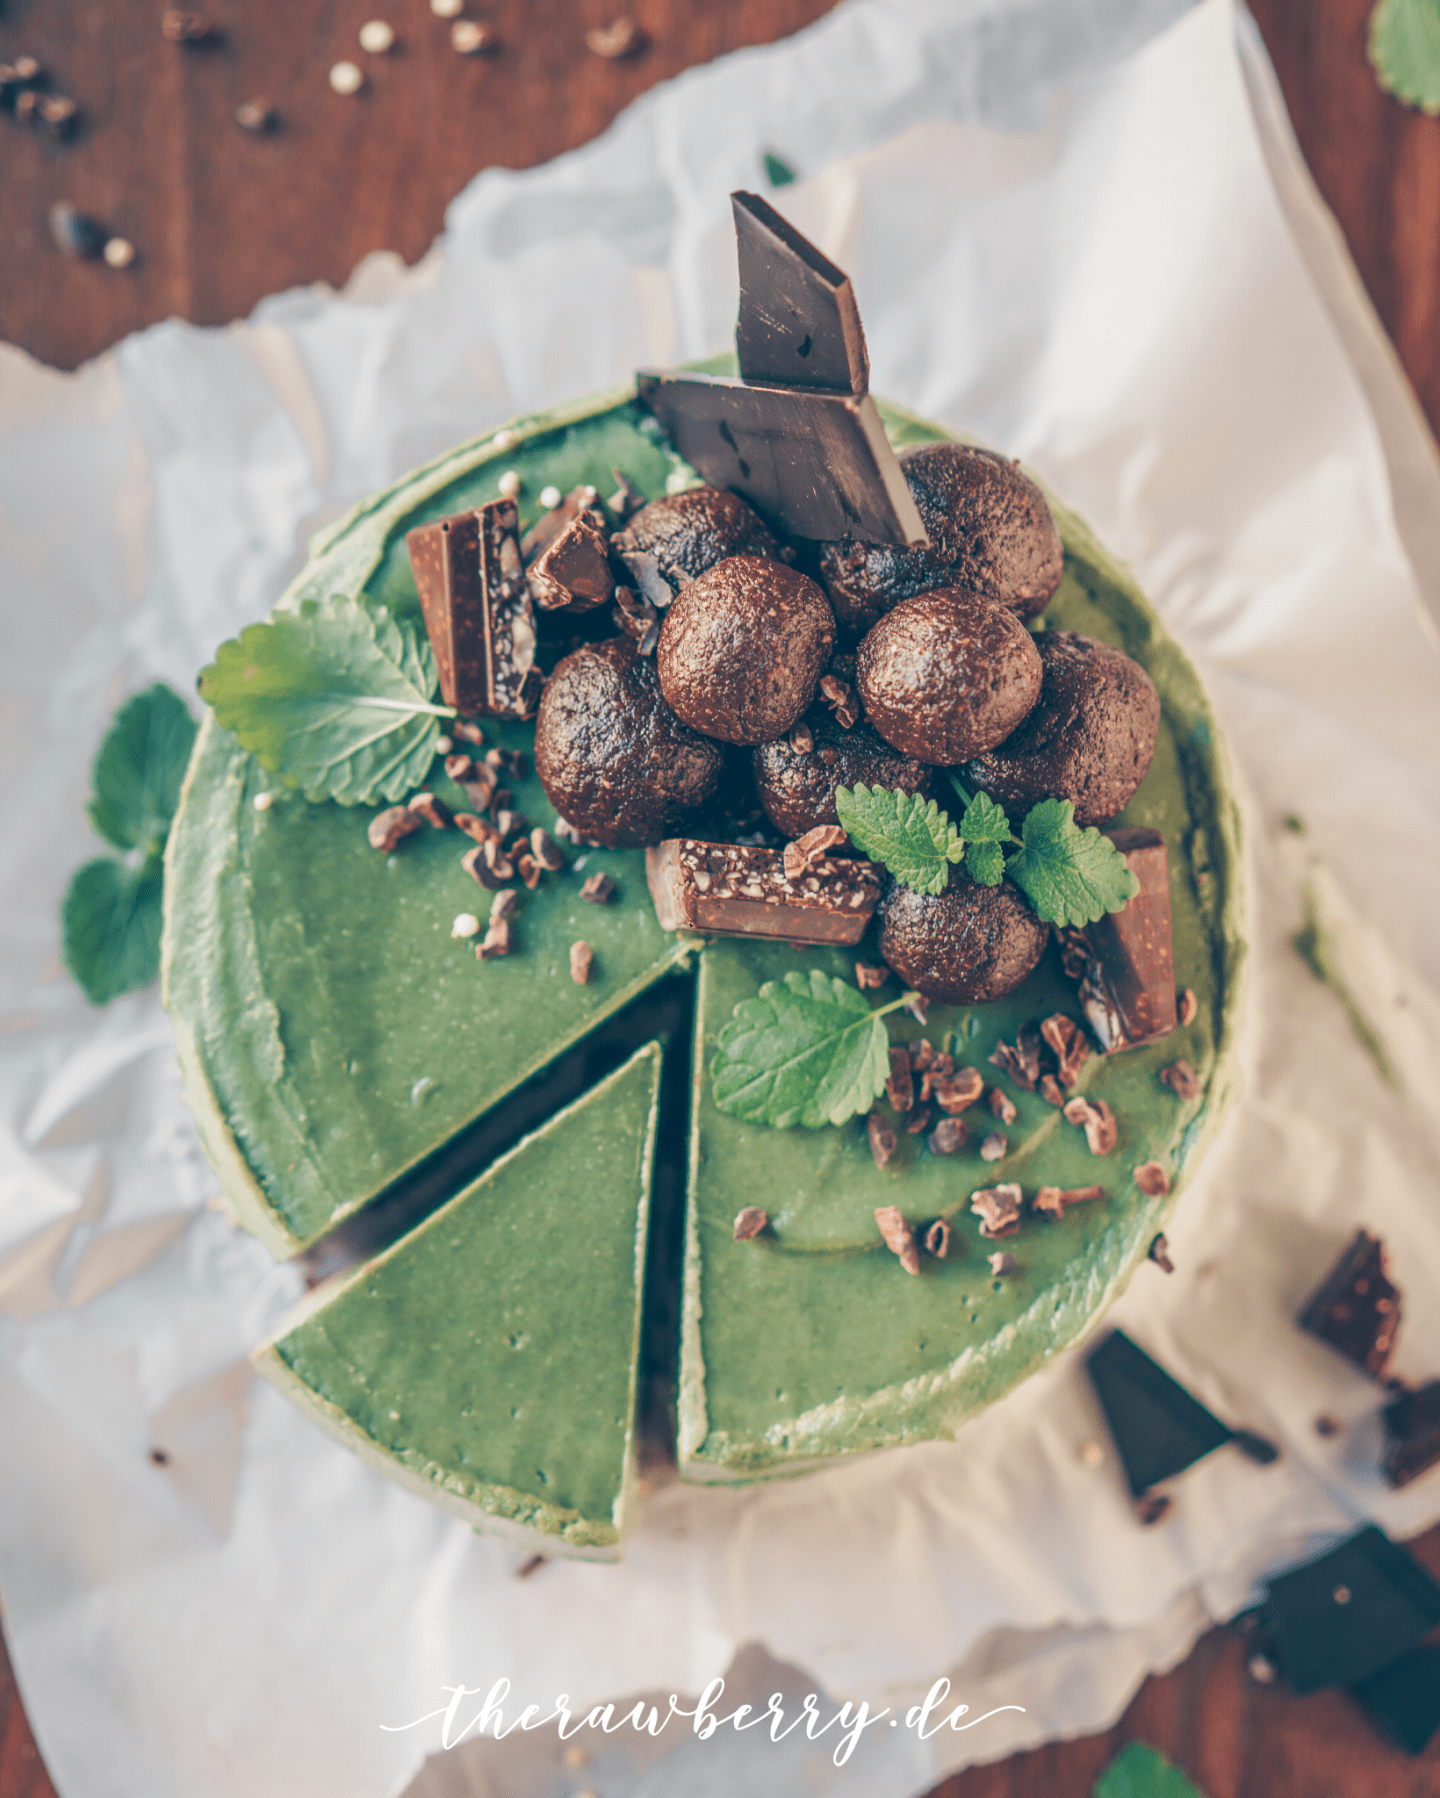 vegan, chocolate, peppermint, raw, cake, kuchen, lecker, delicious, glutenfree, gluten frei, sucker frei, Pfefferminze, chocolate, schokolade, food, essen, Nachtisch, dessert